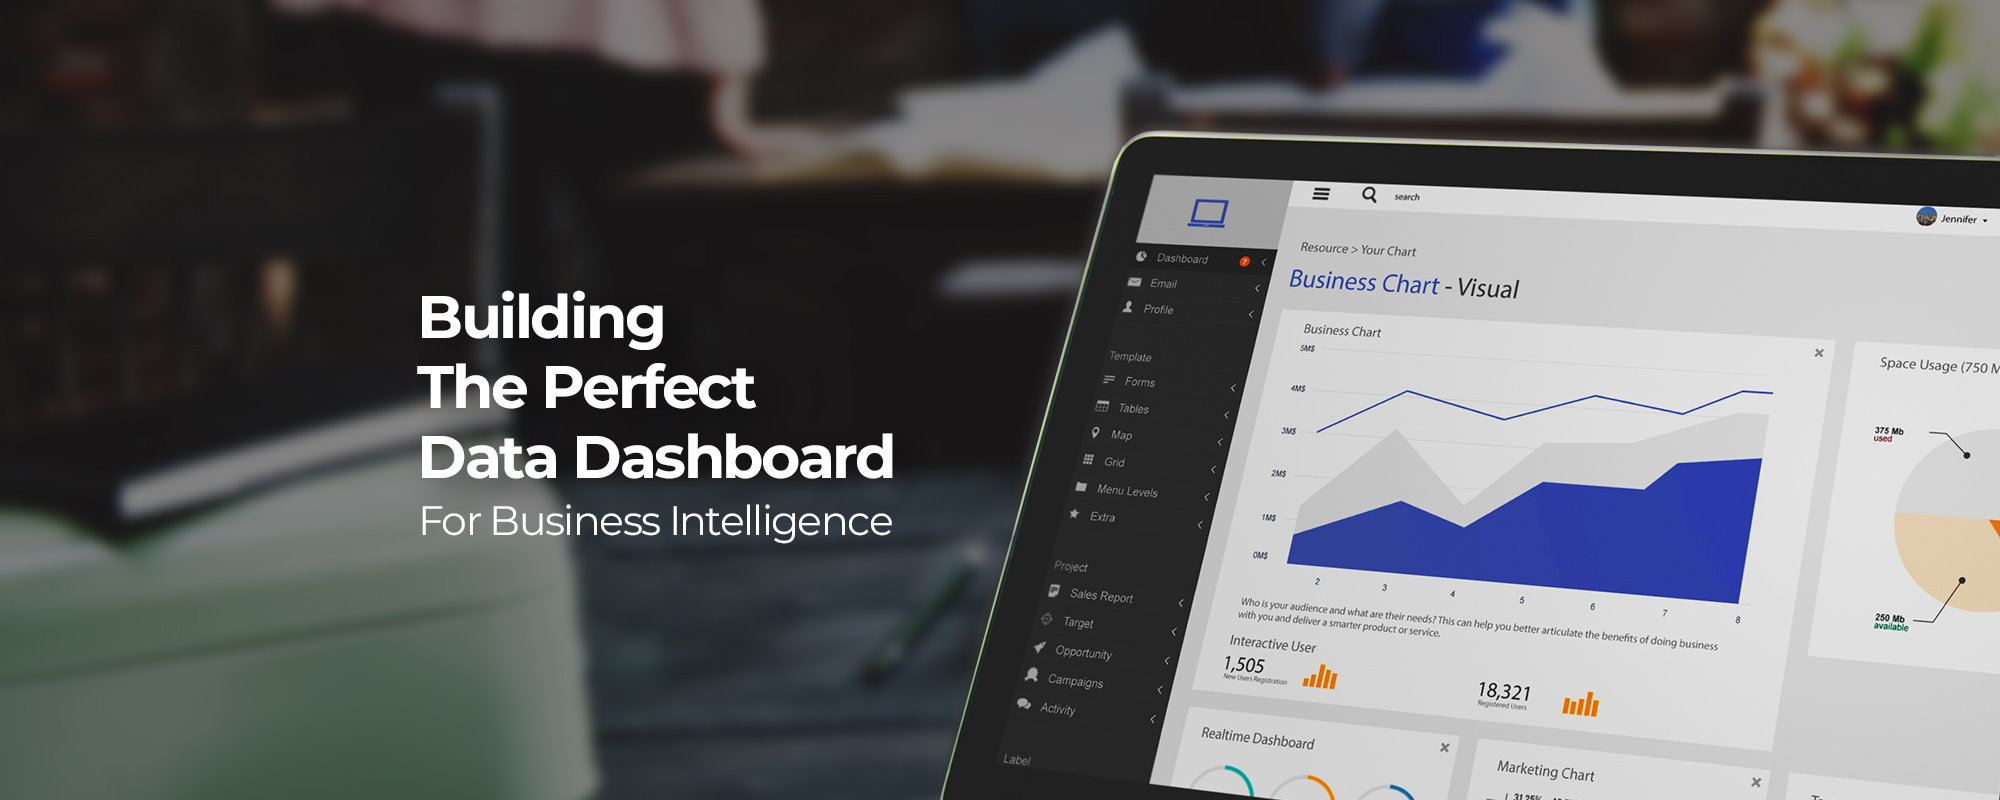 Building the Perfect Data Dashboard for Business Intelligence